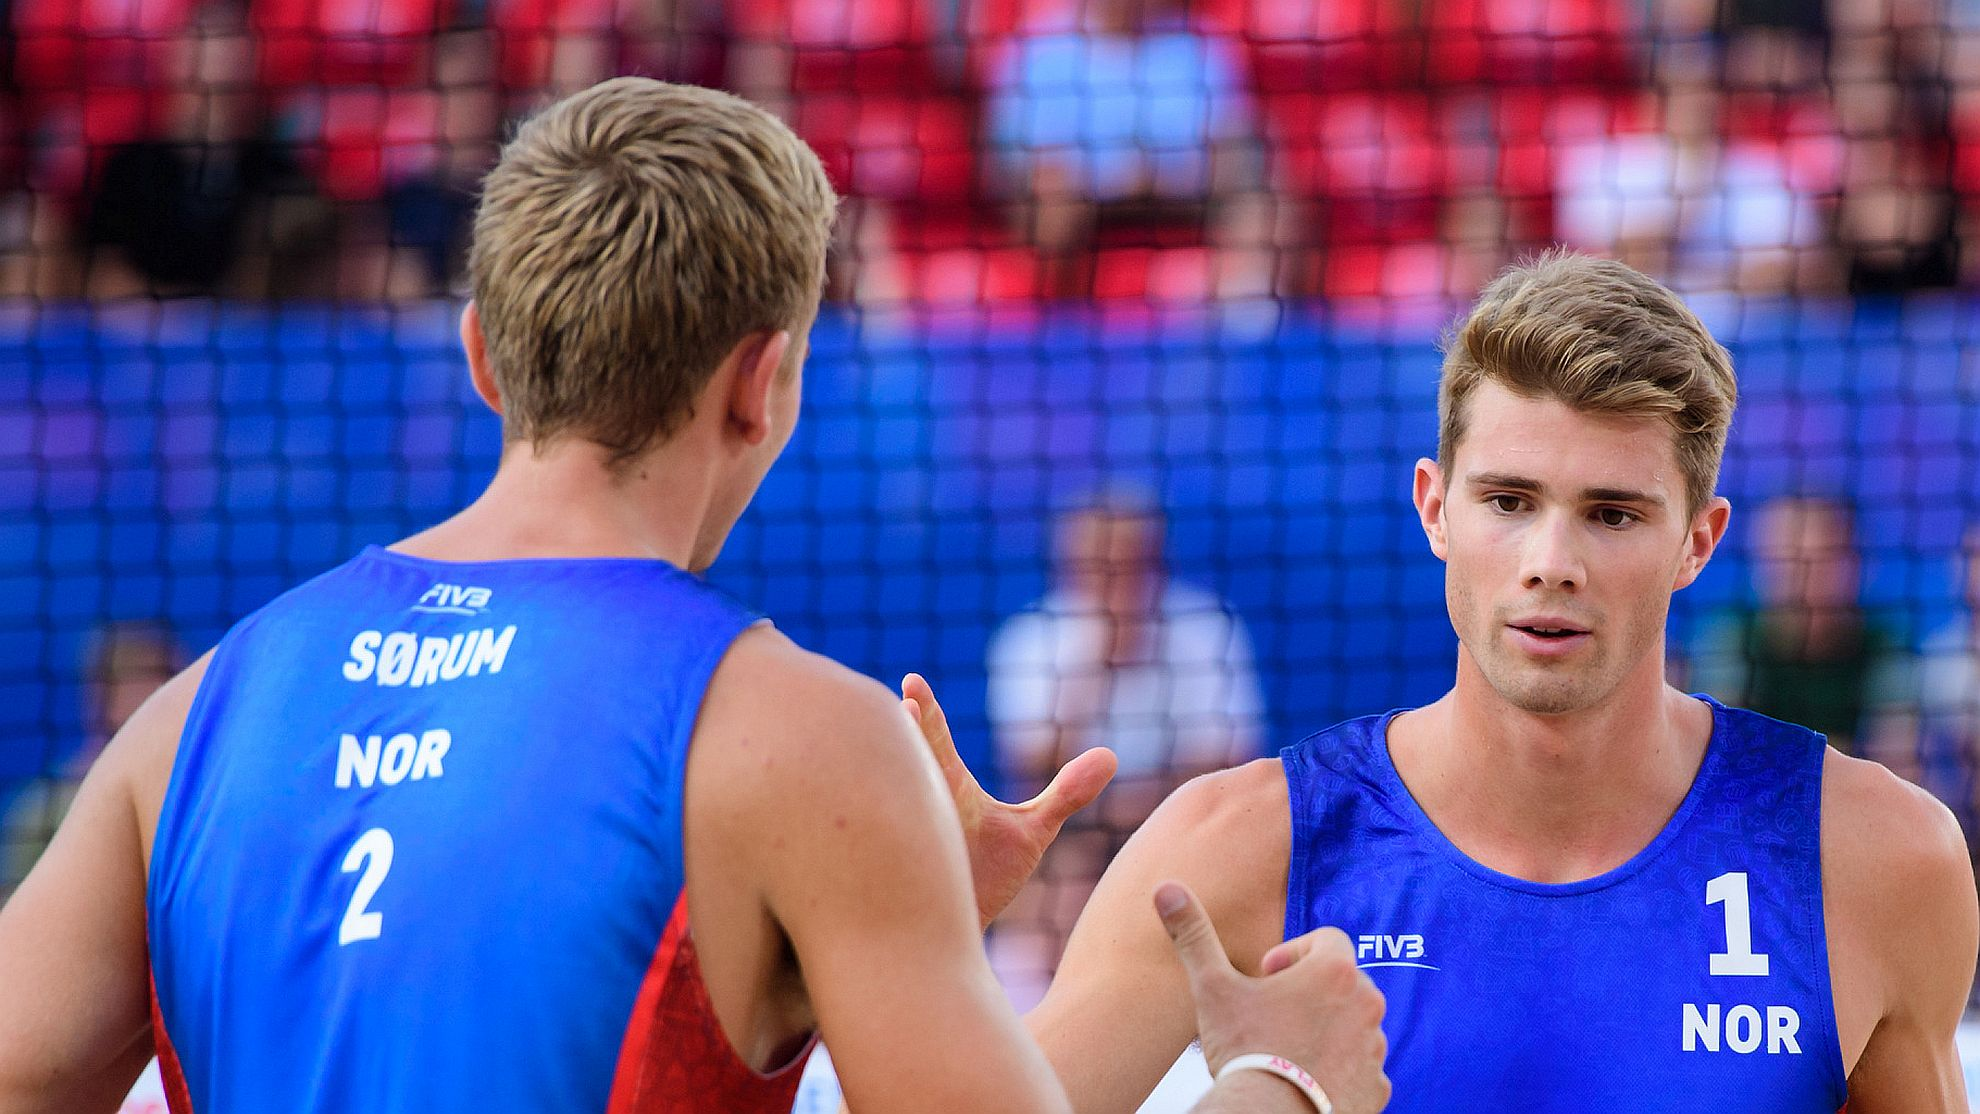 Anders Mol/Christian Sørum 2018 - FOTO © FIVB